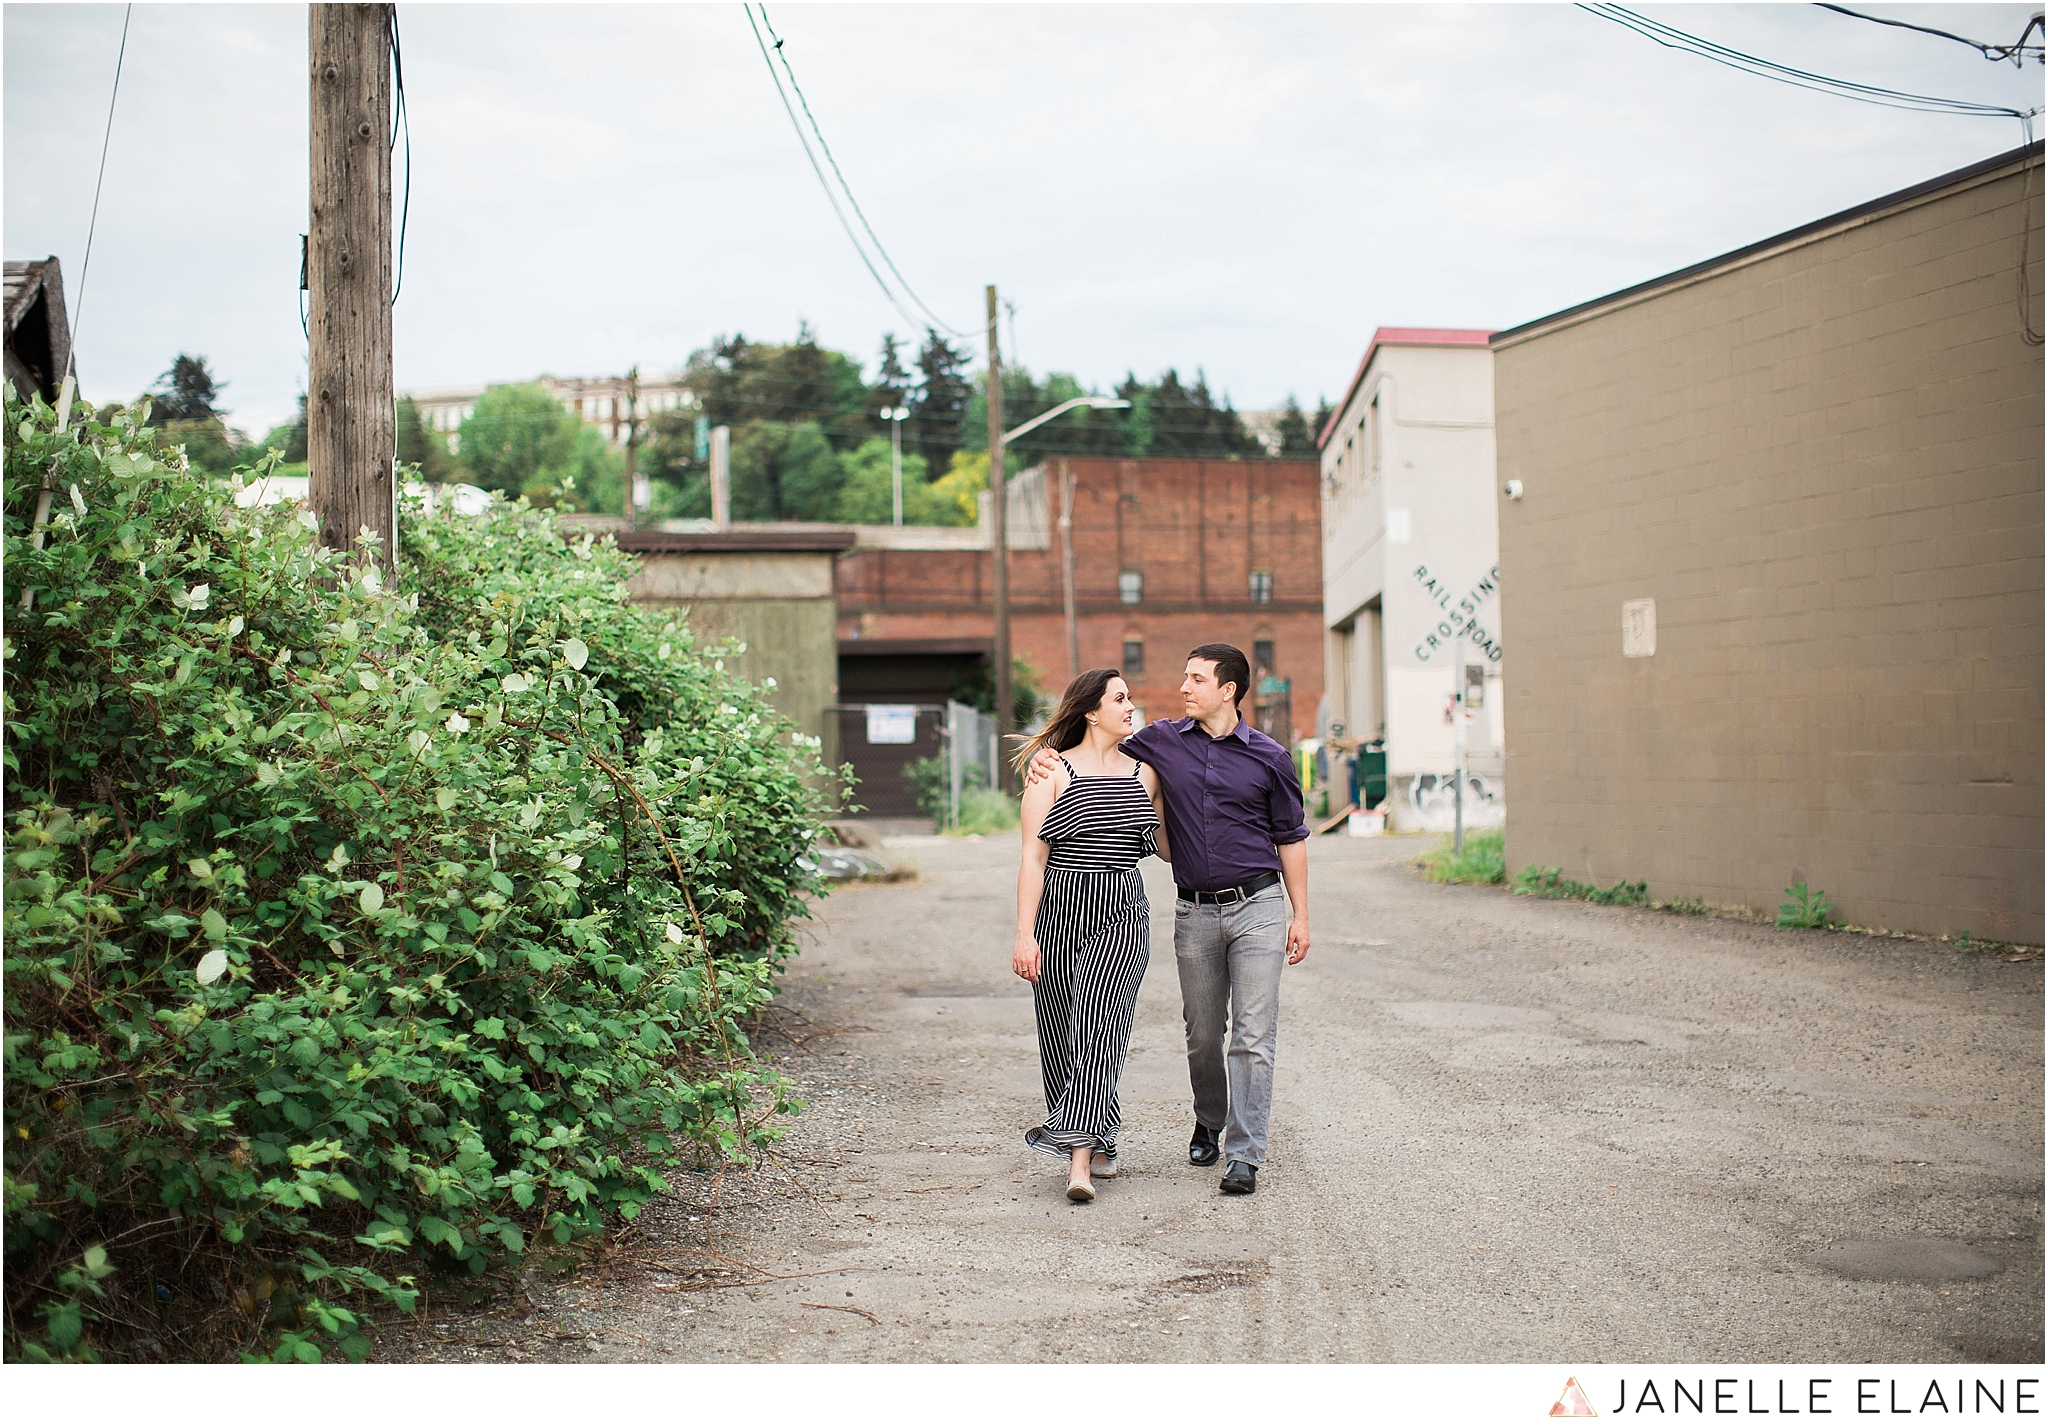 karen ethan-georgetown engagement photos-seattle-janelle elaine photography-206.jpg